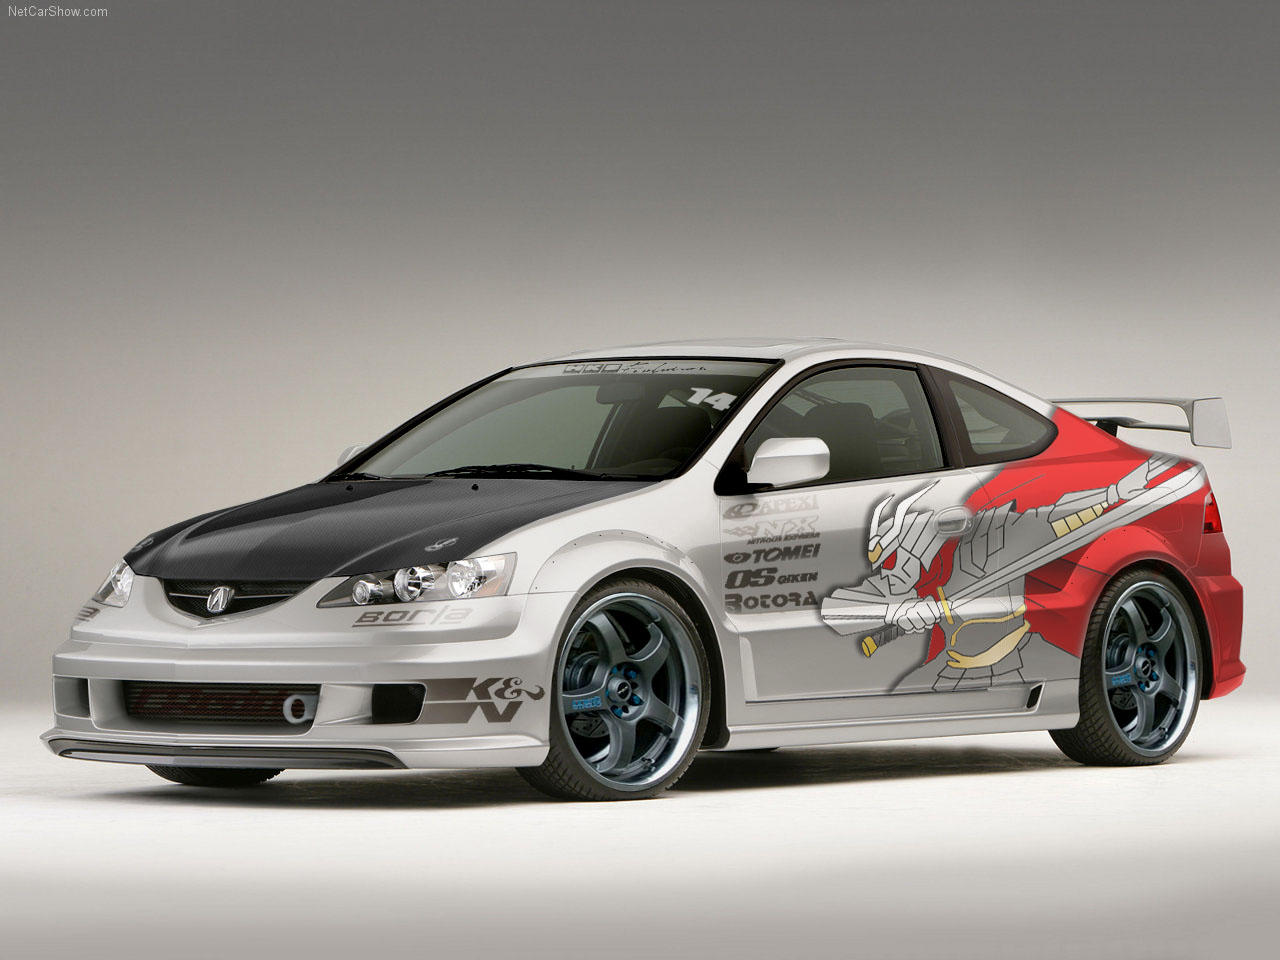 Acura RSX For Sale Custom Acura Seat Covers The Effective Seat - Acura rsx accessories